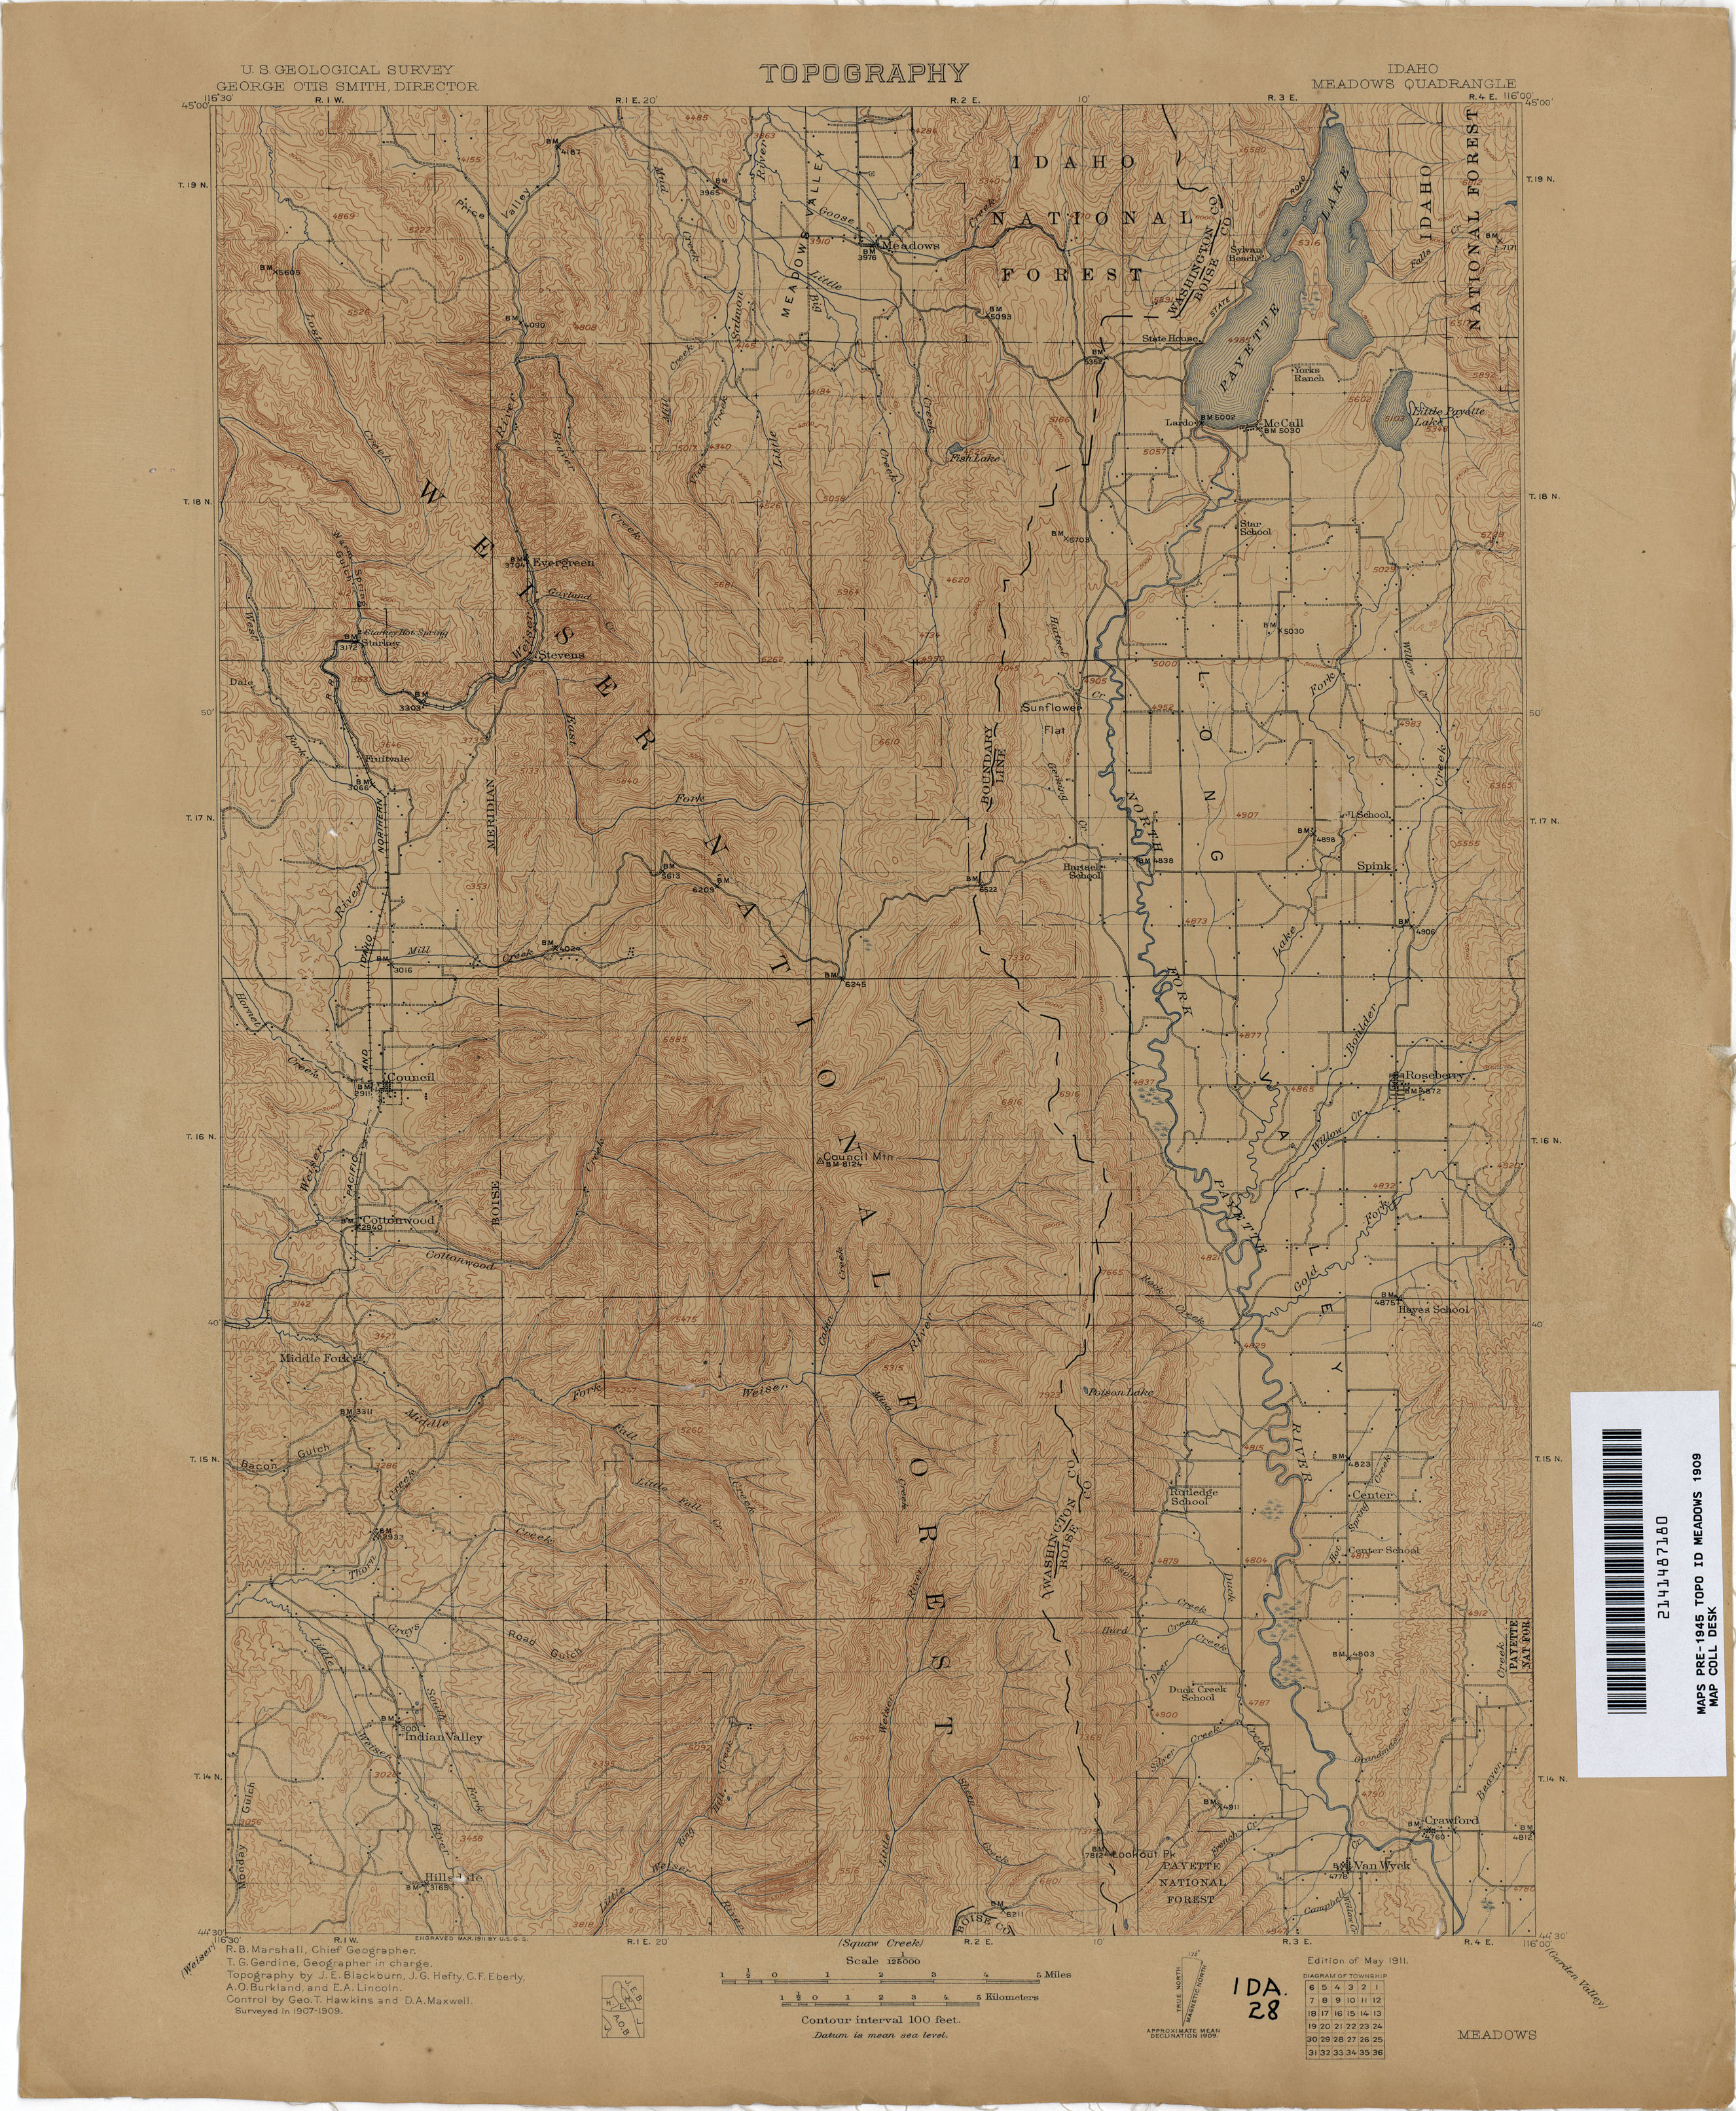 Idaho Historical Topographic Maps PerryCastañeda Map Collection - Google topographic maps online